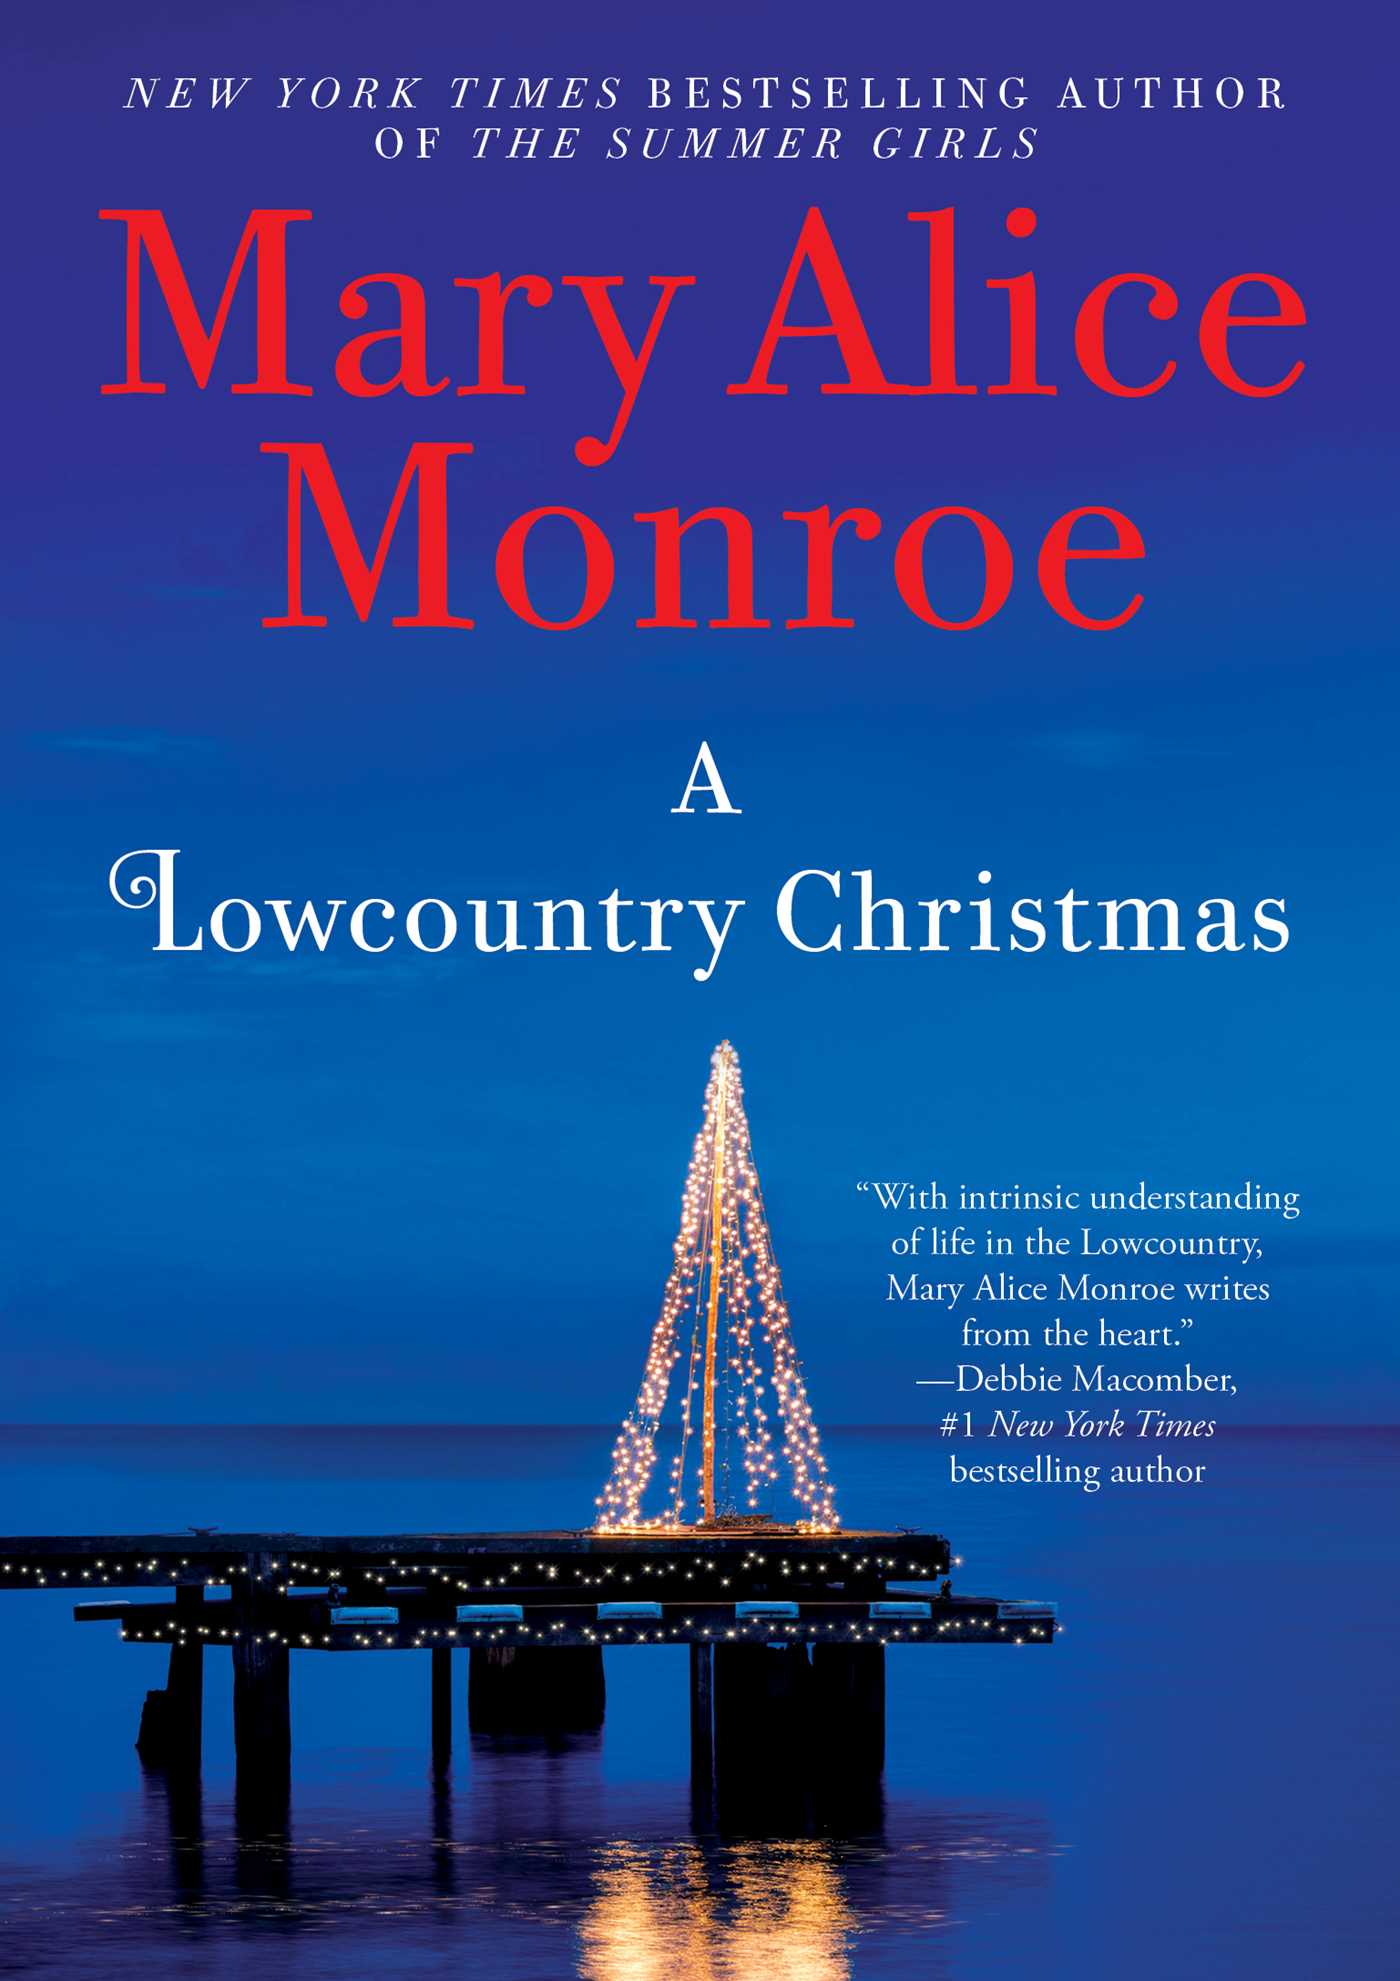 Nationally bestselling author Mary Alice Monroe returns to Milwaukee for holiday book event